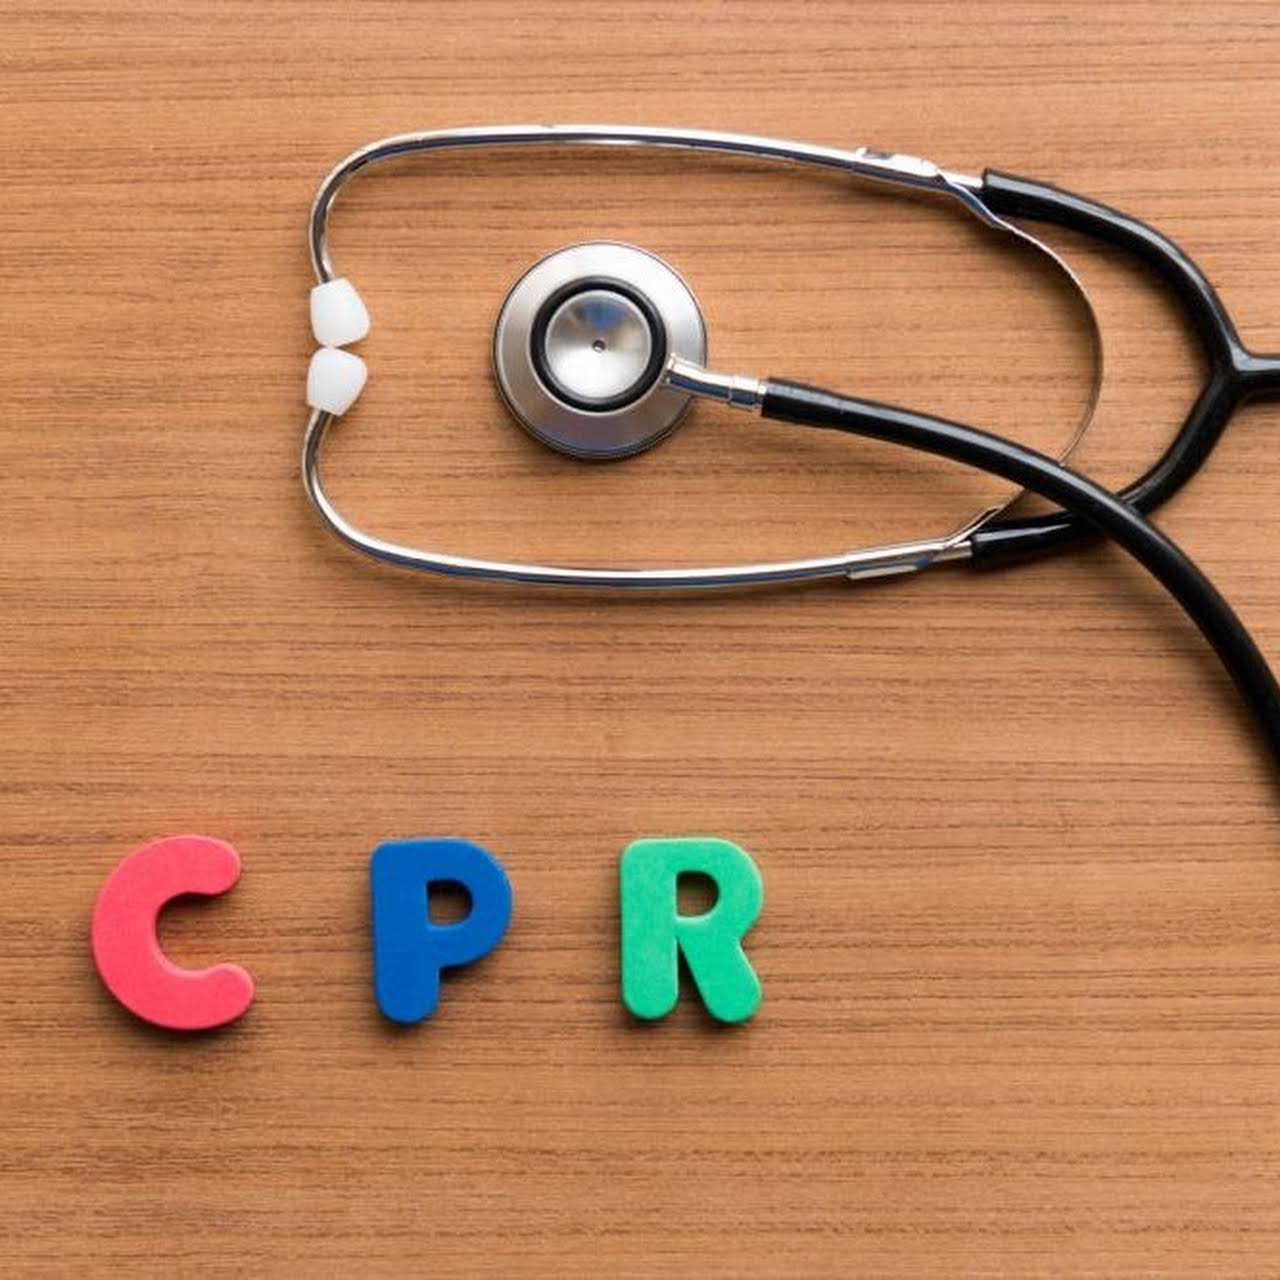 Texas Cpr Training Cpr Training For Dallas Texas And All